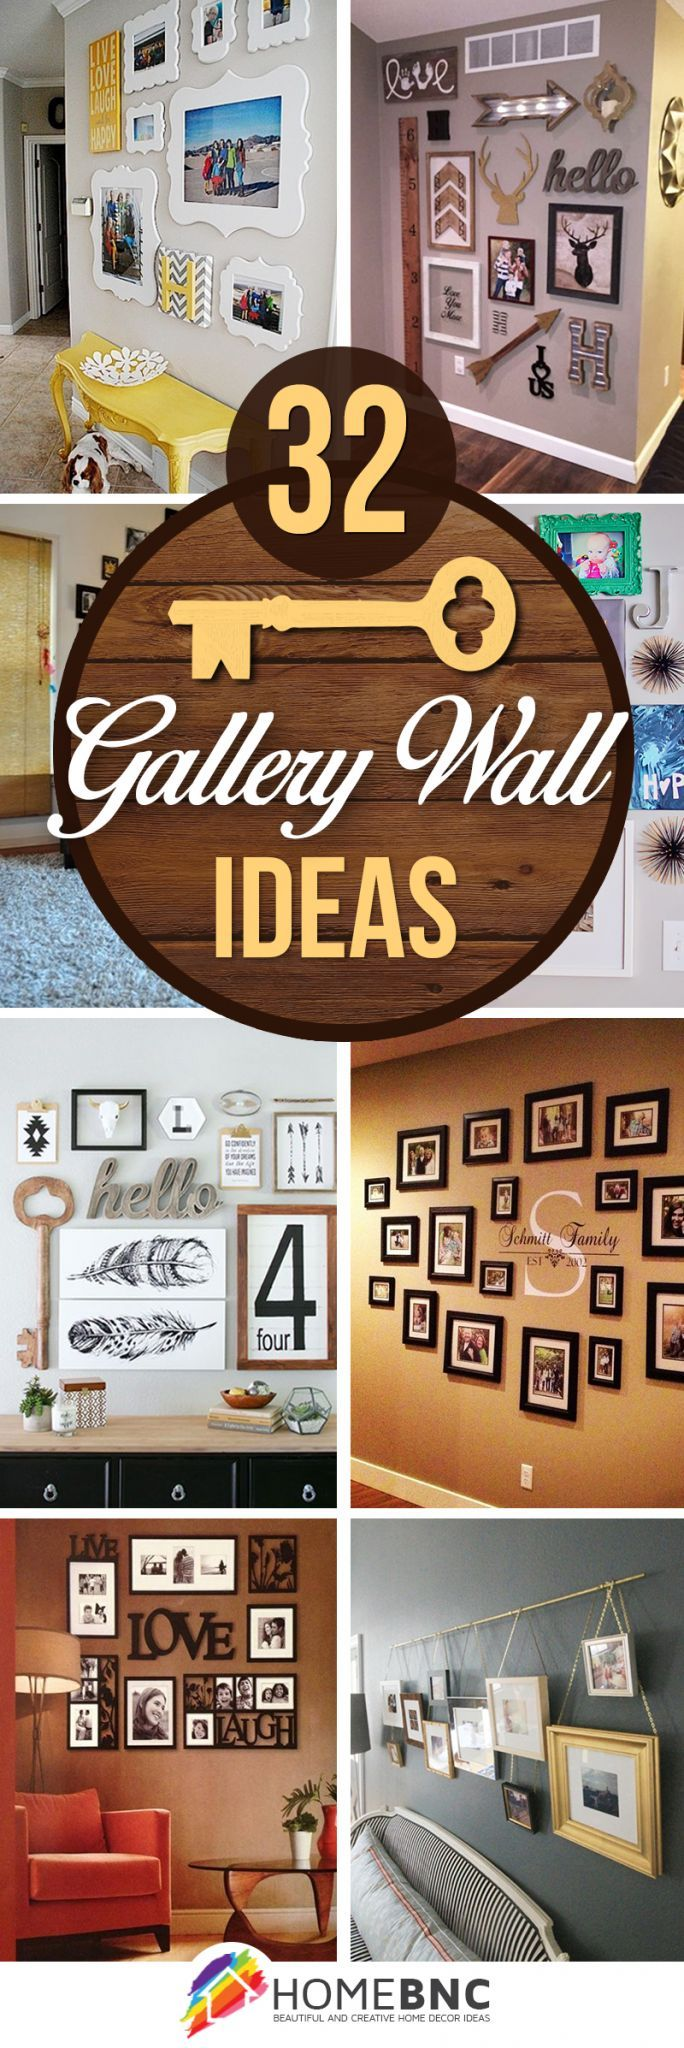 Gallery Wall Designs